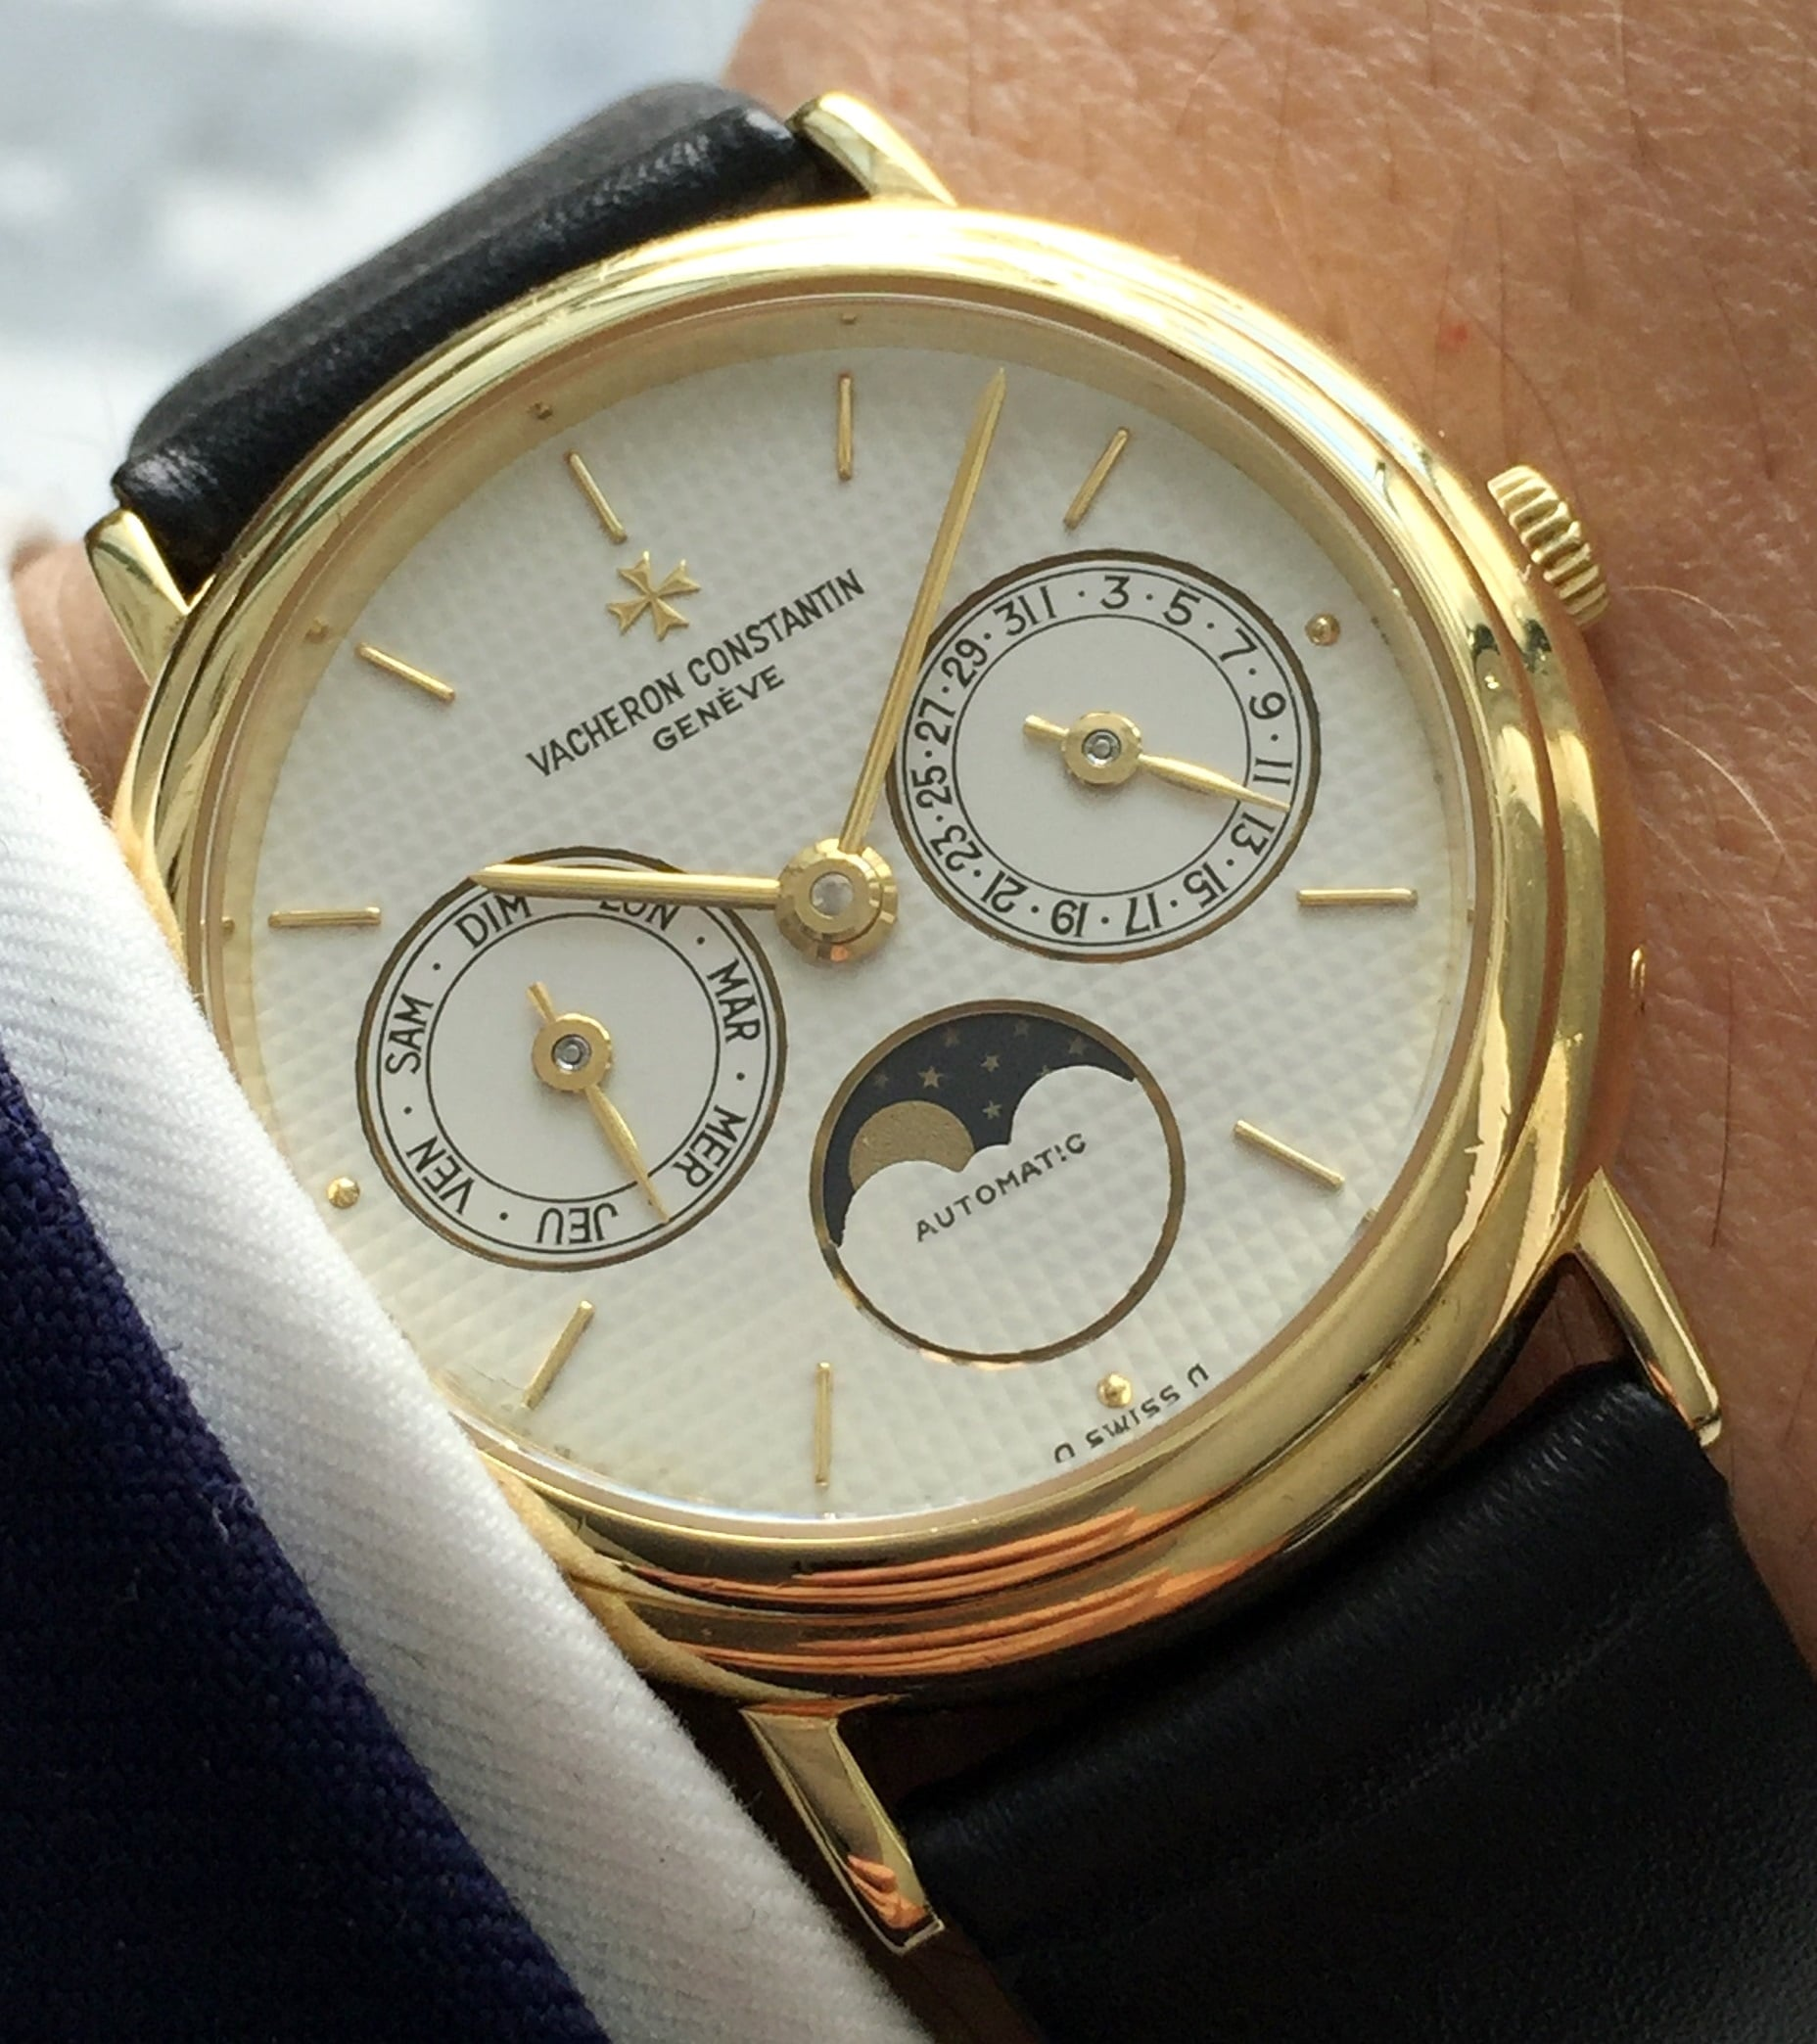 Vacheron Constantin Day Date Moonphase Patrimony Gold